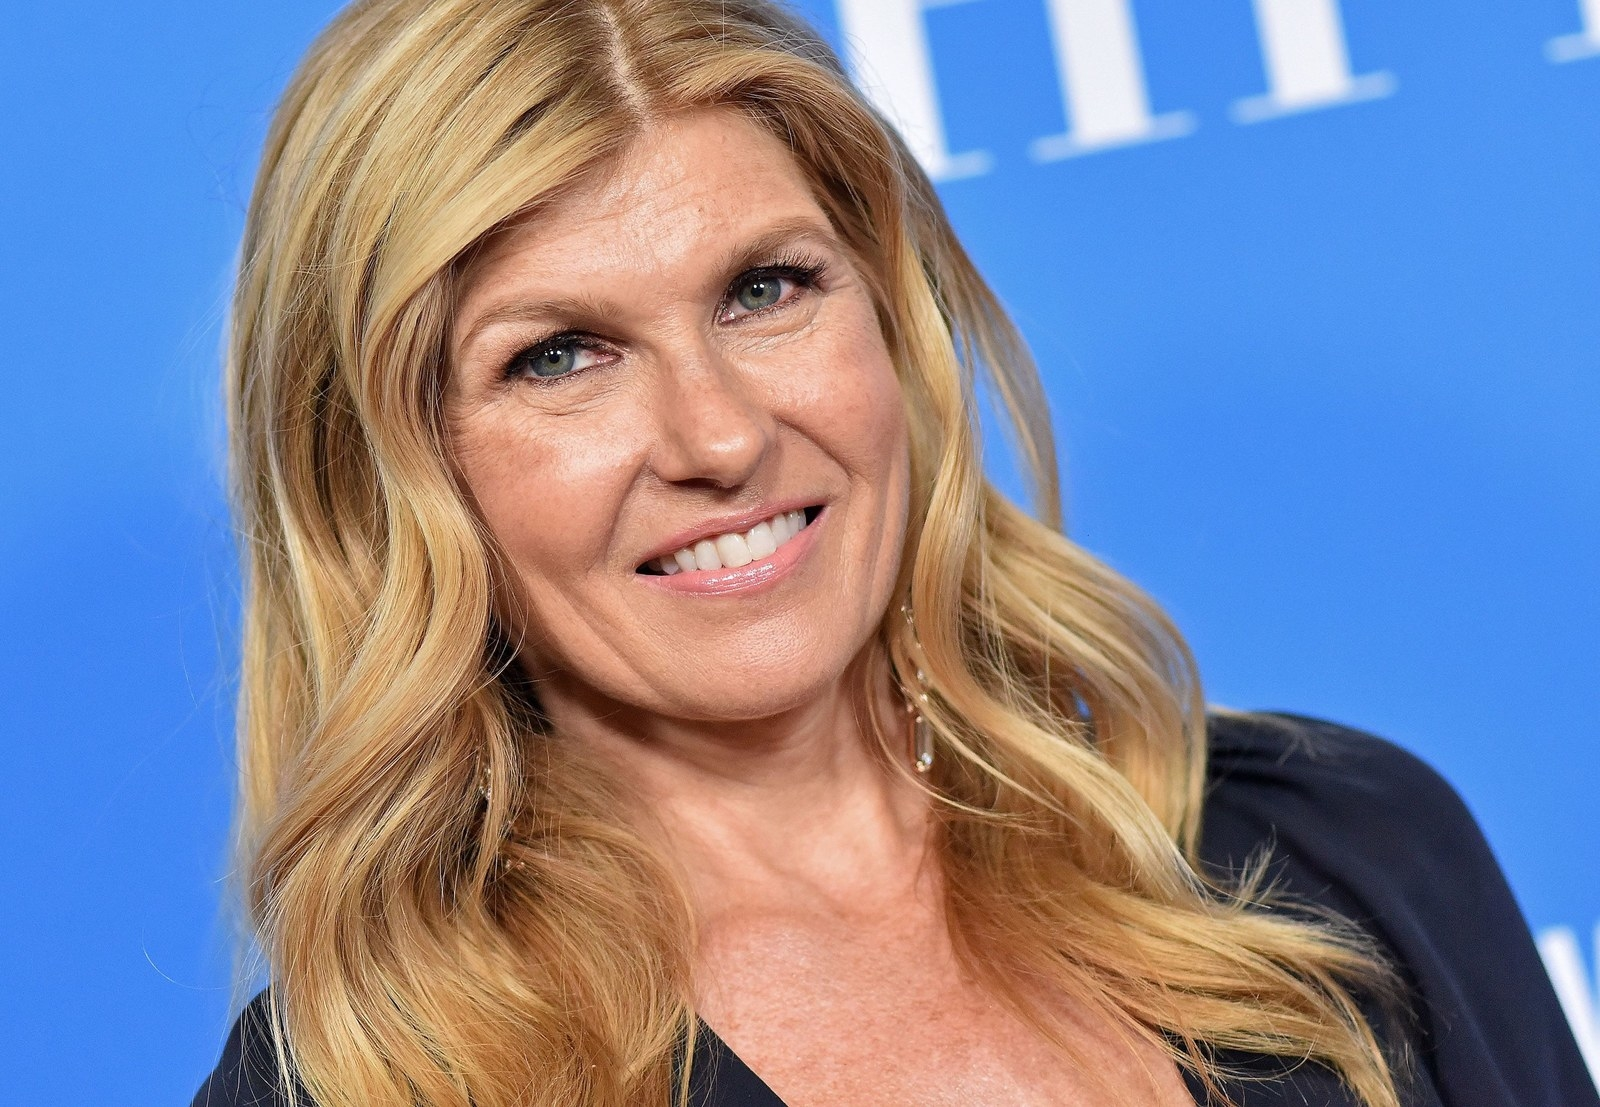 And also on March 6 is Connie Britton, who will be turning 52.